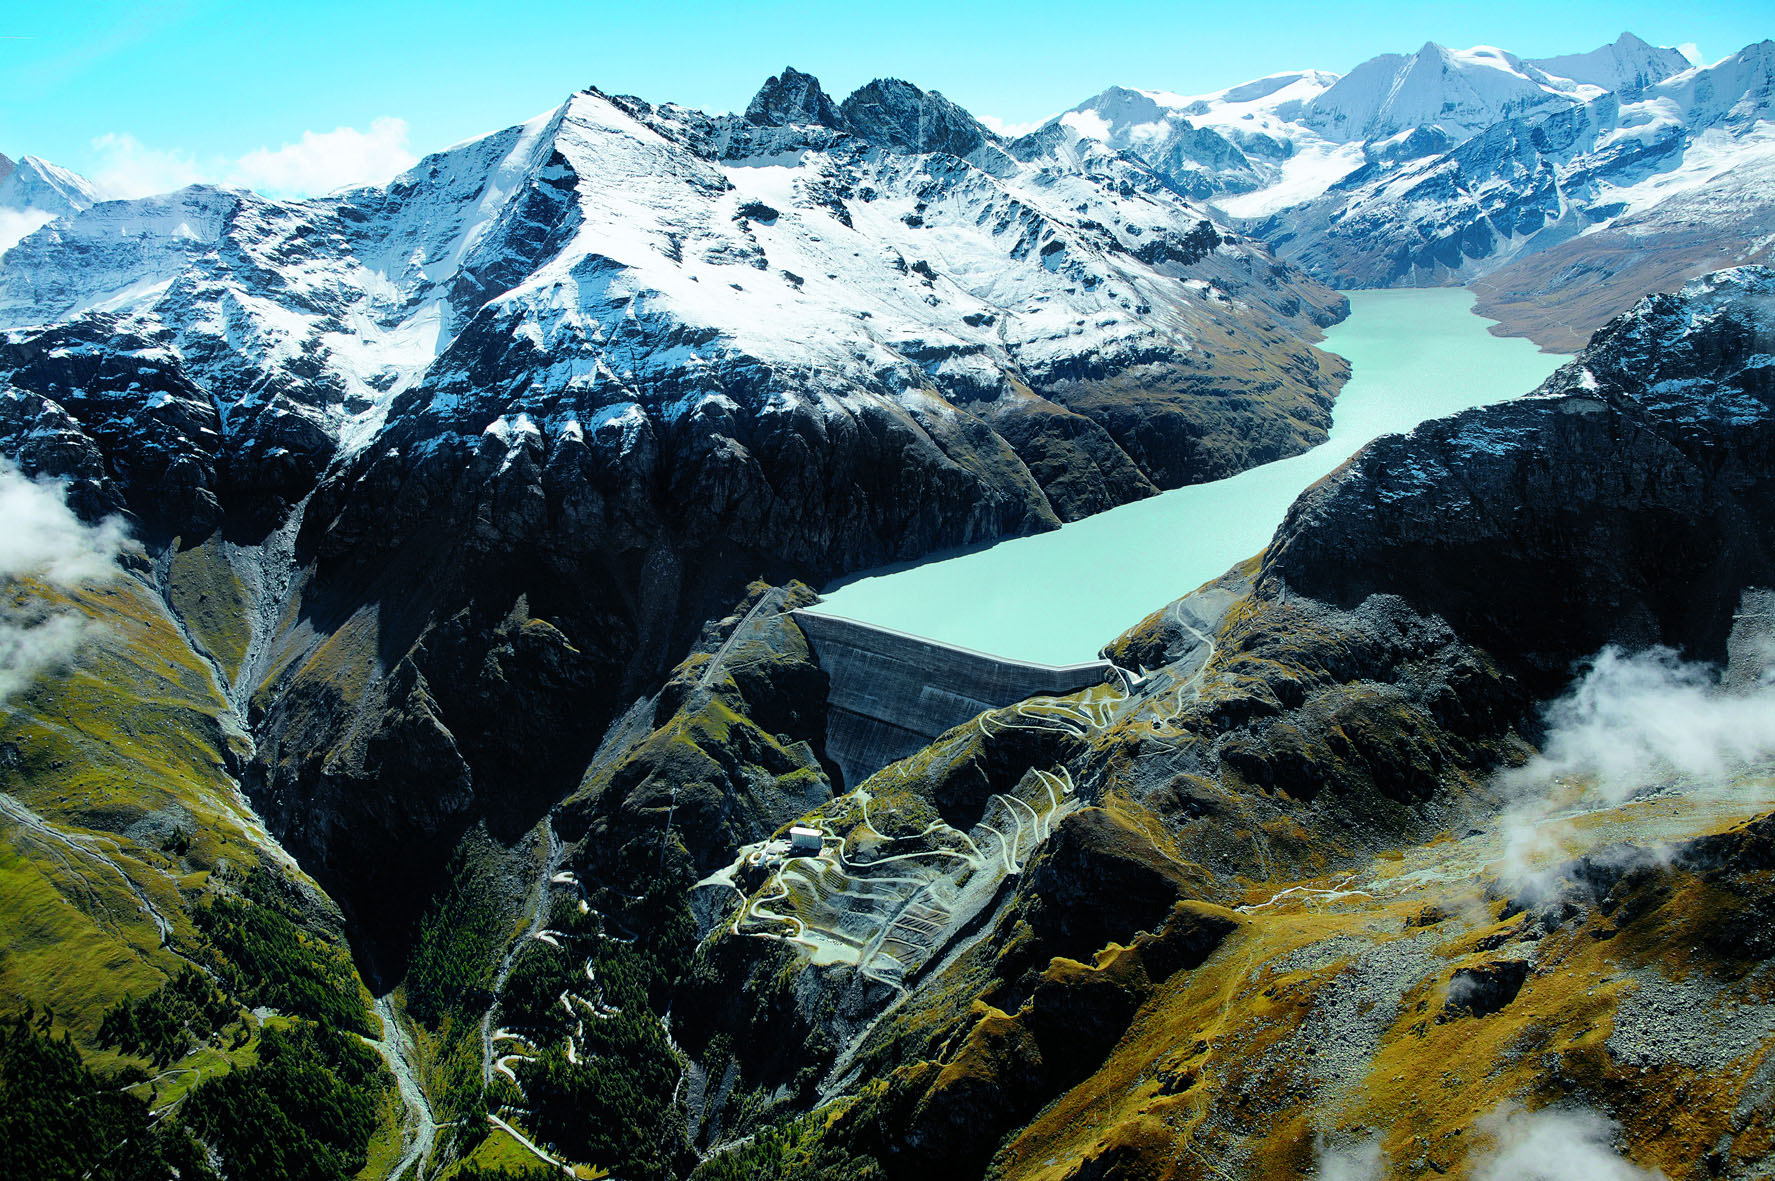 20 reasons to visit Switzerland